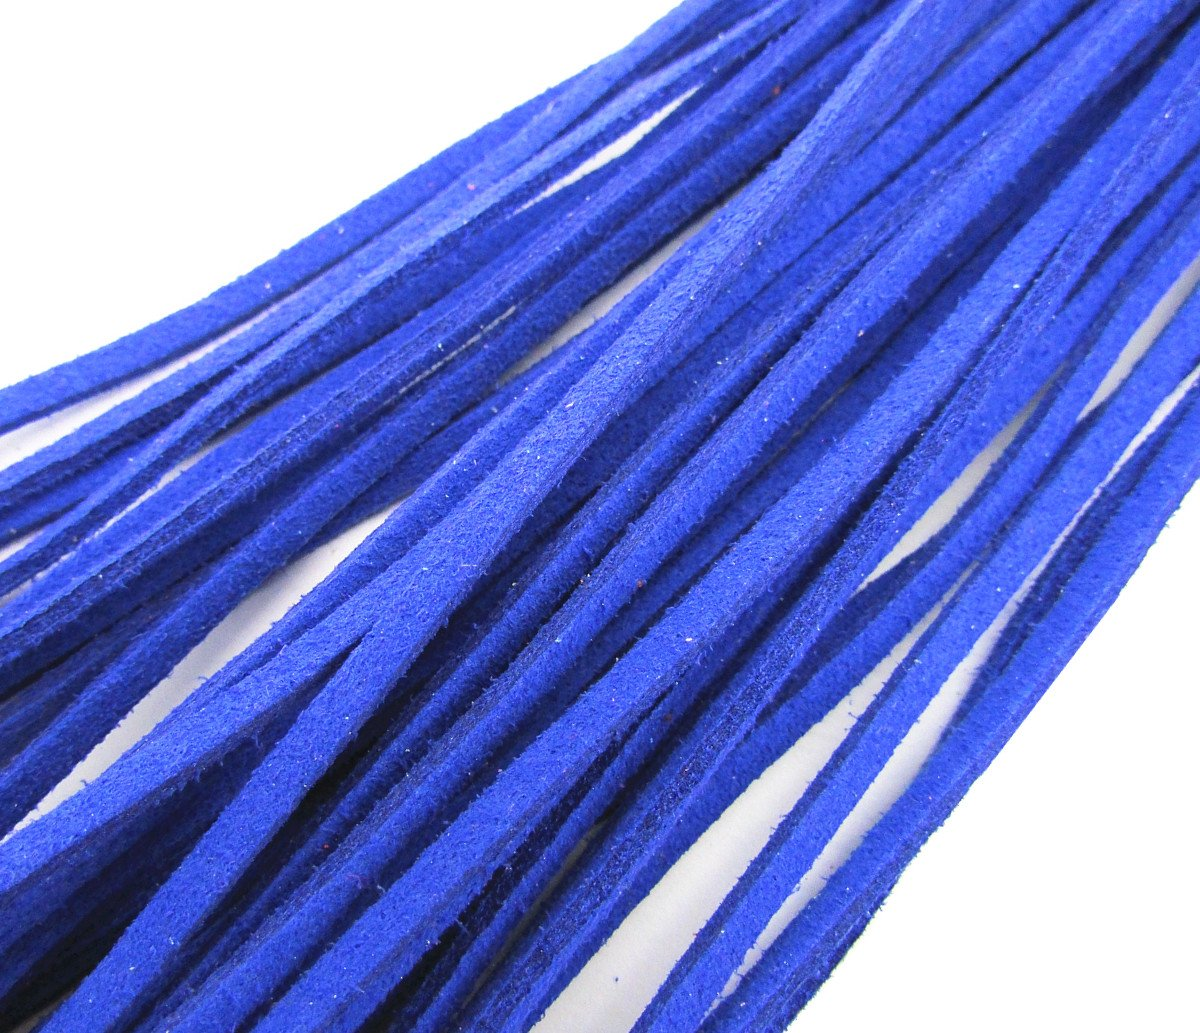 Necklace Cords Blue Cord Rope 20Pcs Leather Each 18 for Jewelry Making Design 3.0mm